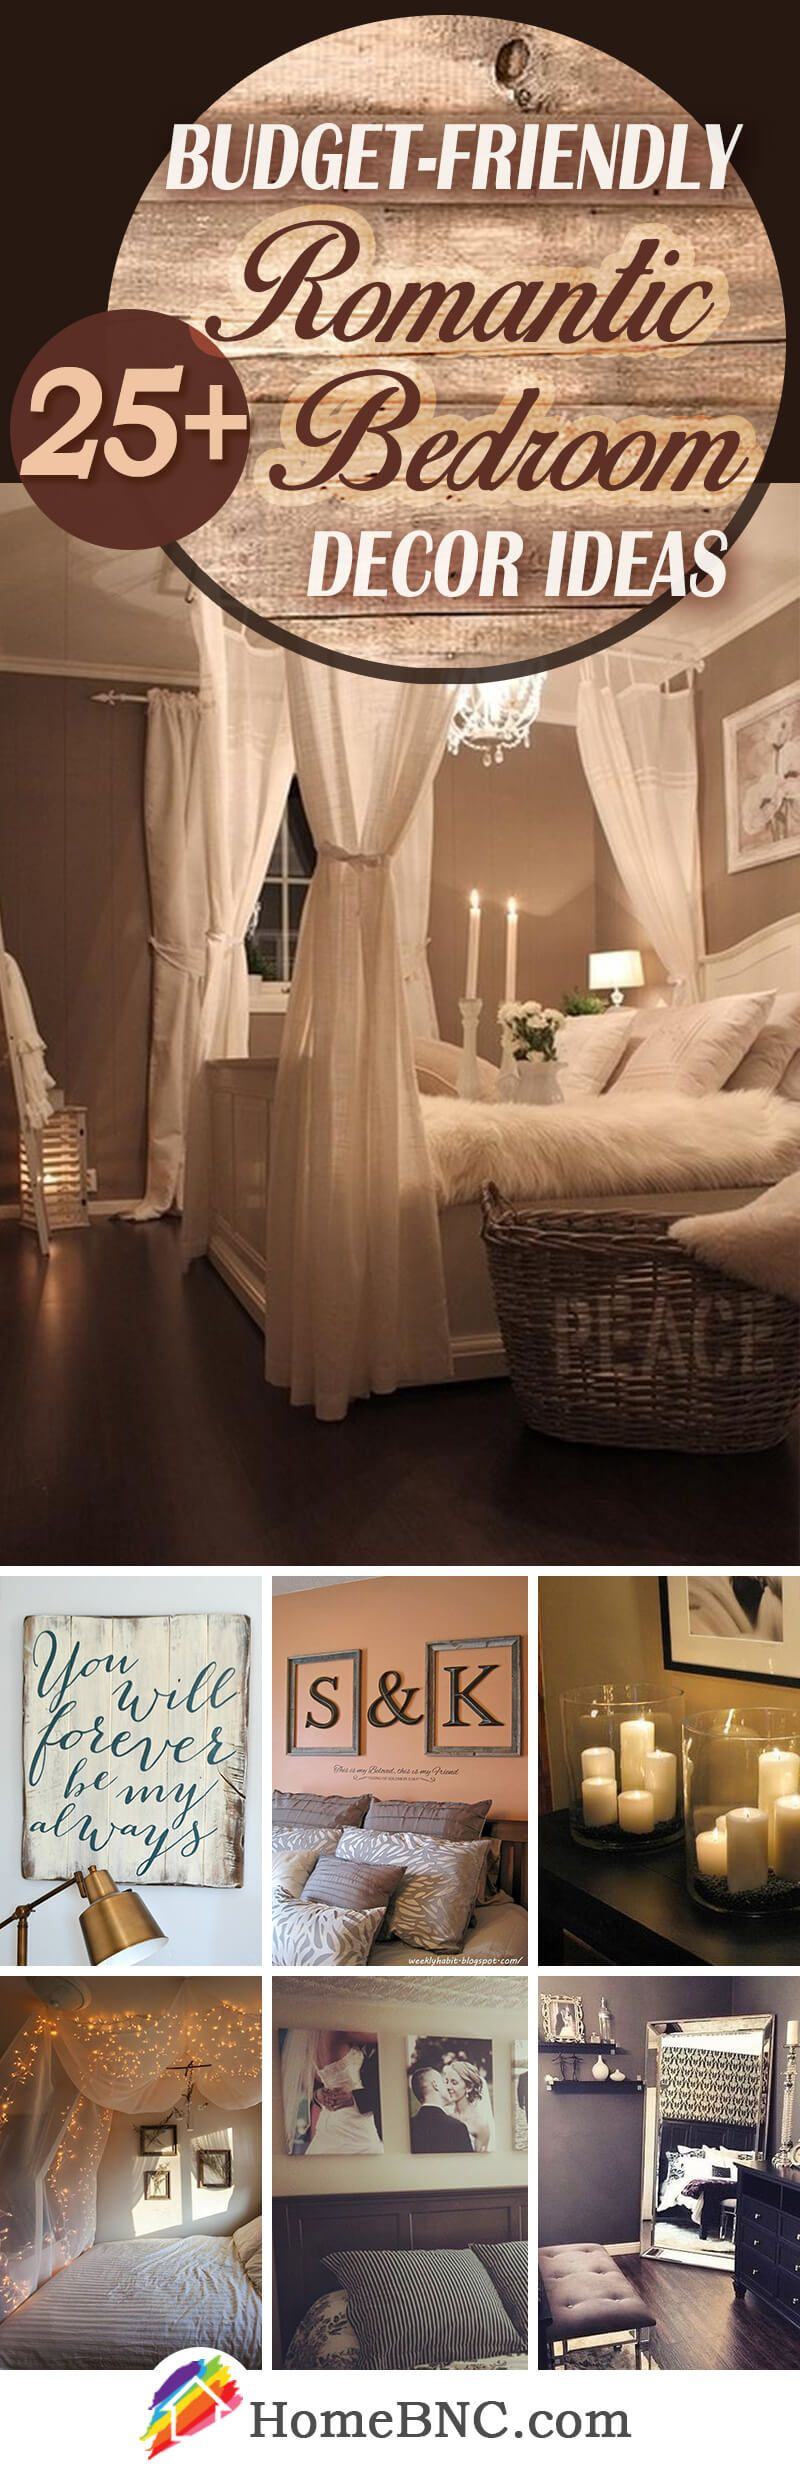 Uberlegen 25+ Romantic Bedroom Decor Ideas To Make Your Home More Stylish On A Budget